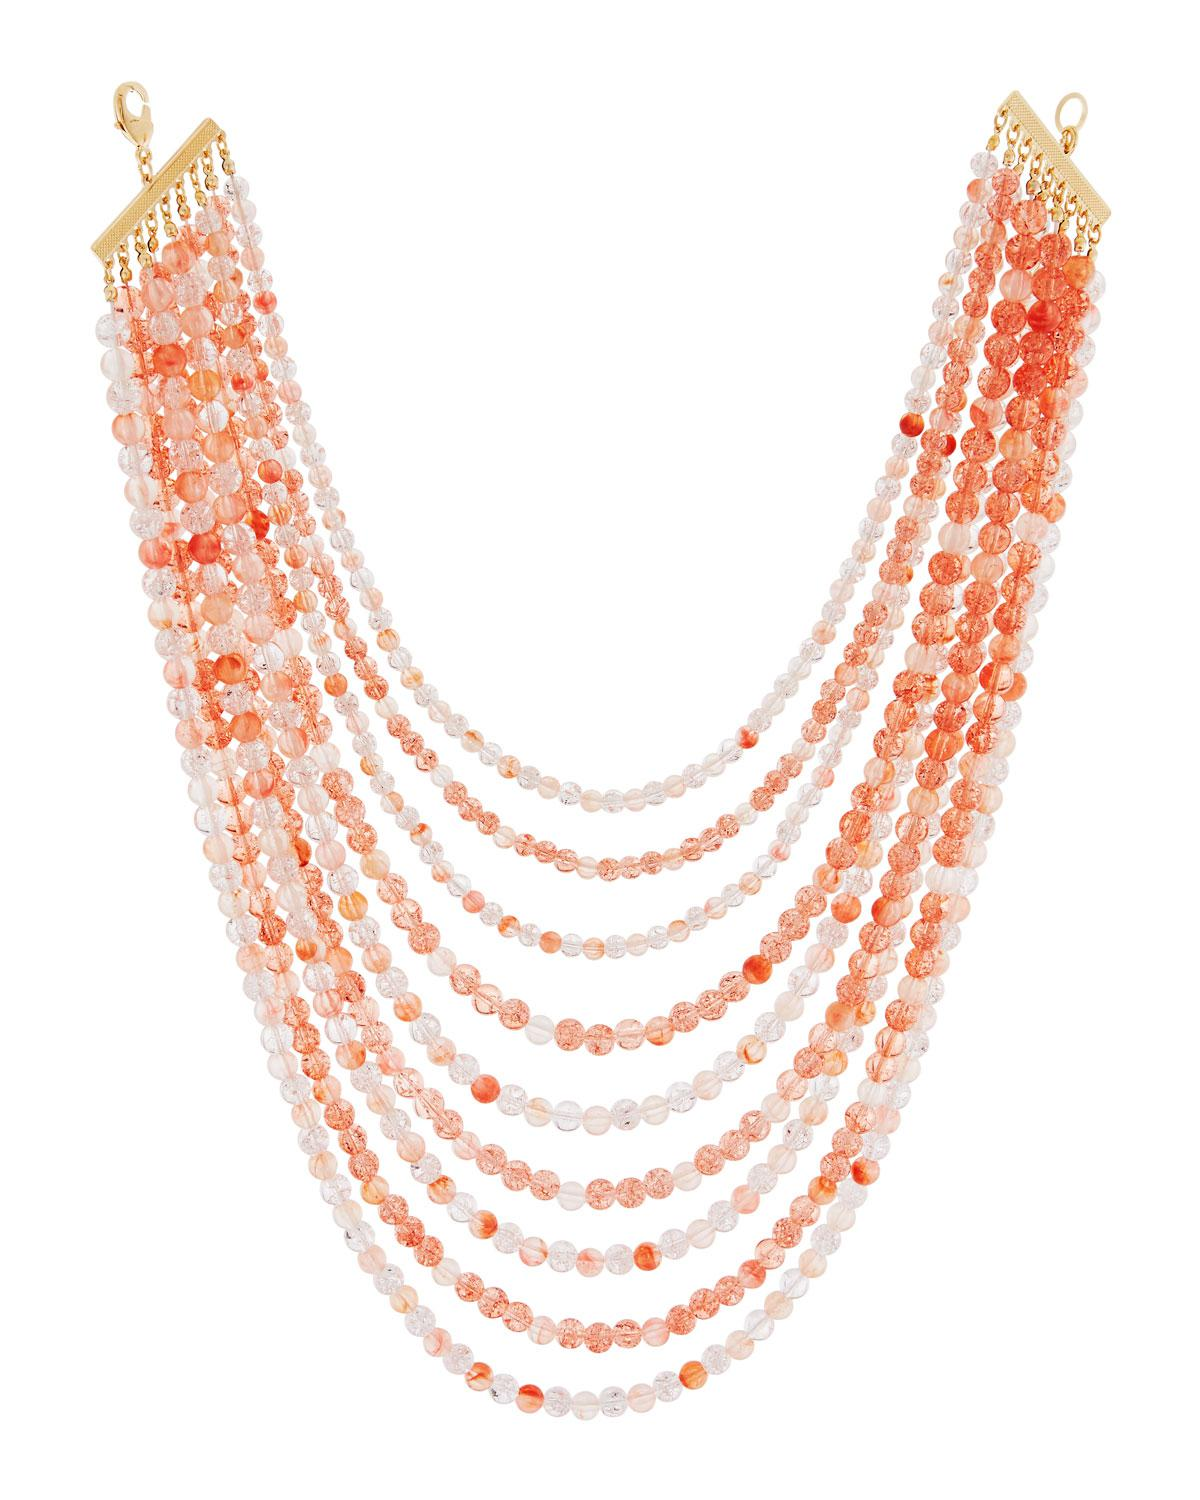 Lydell Nyc Long Graduating Acrylic Beaded Necklace bwBSqLKQ